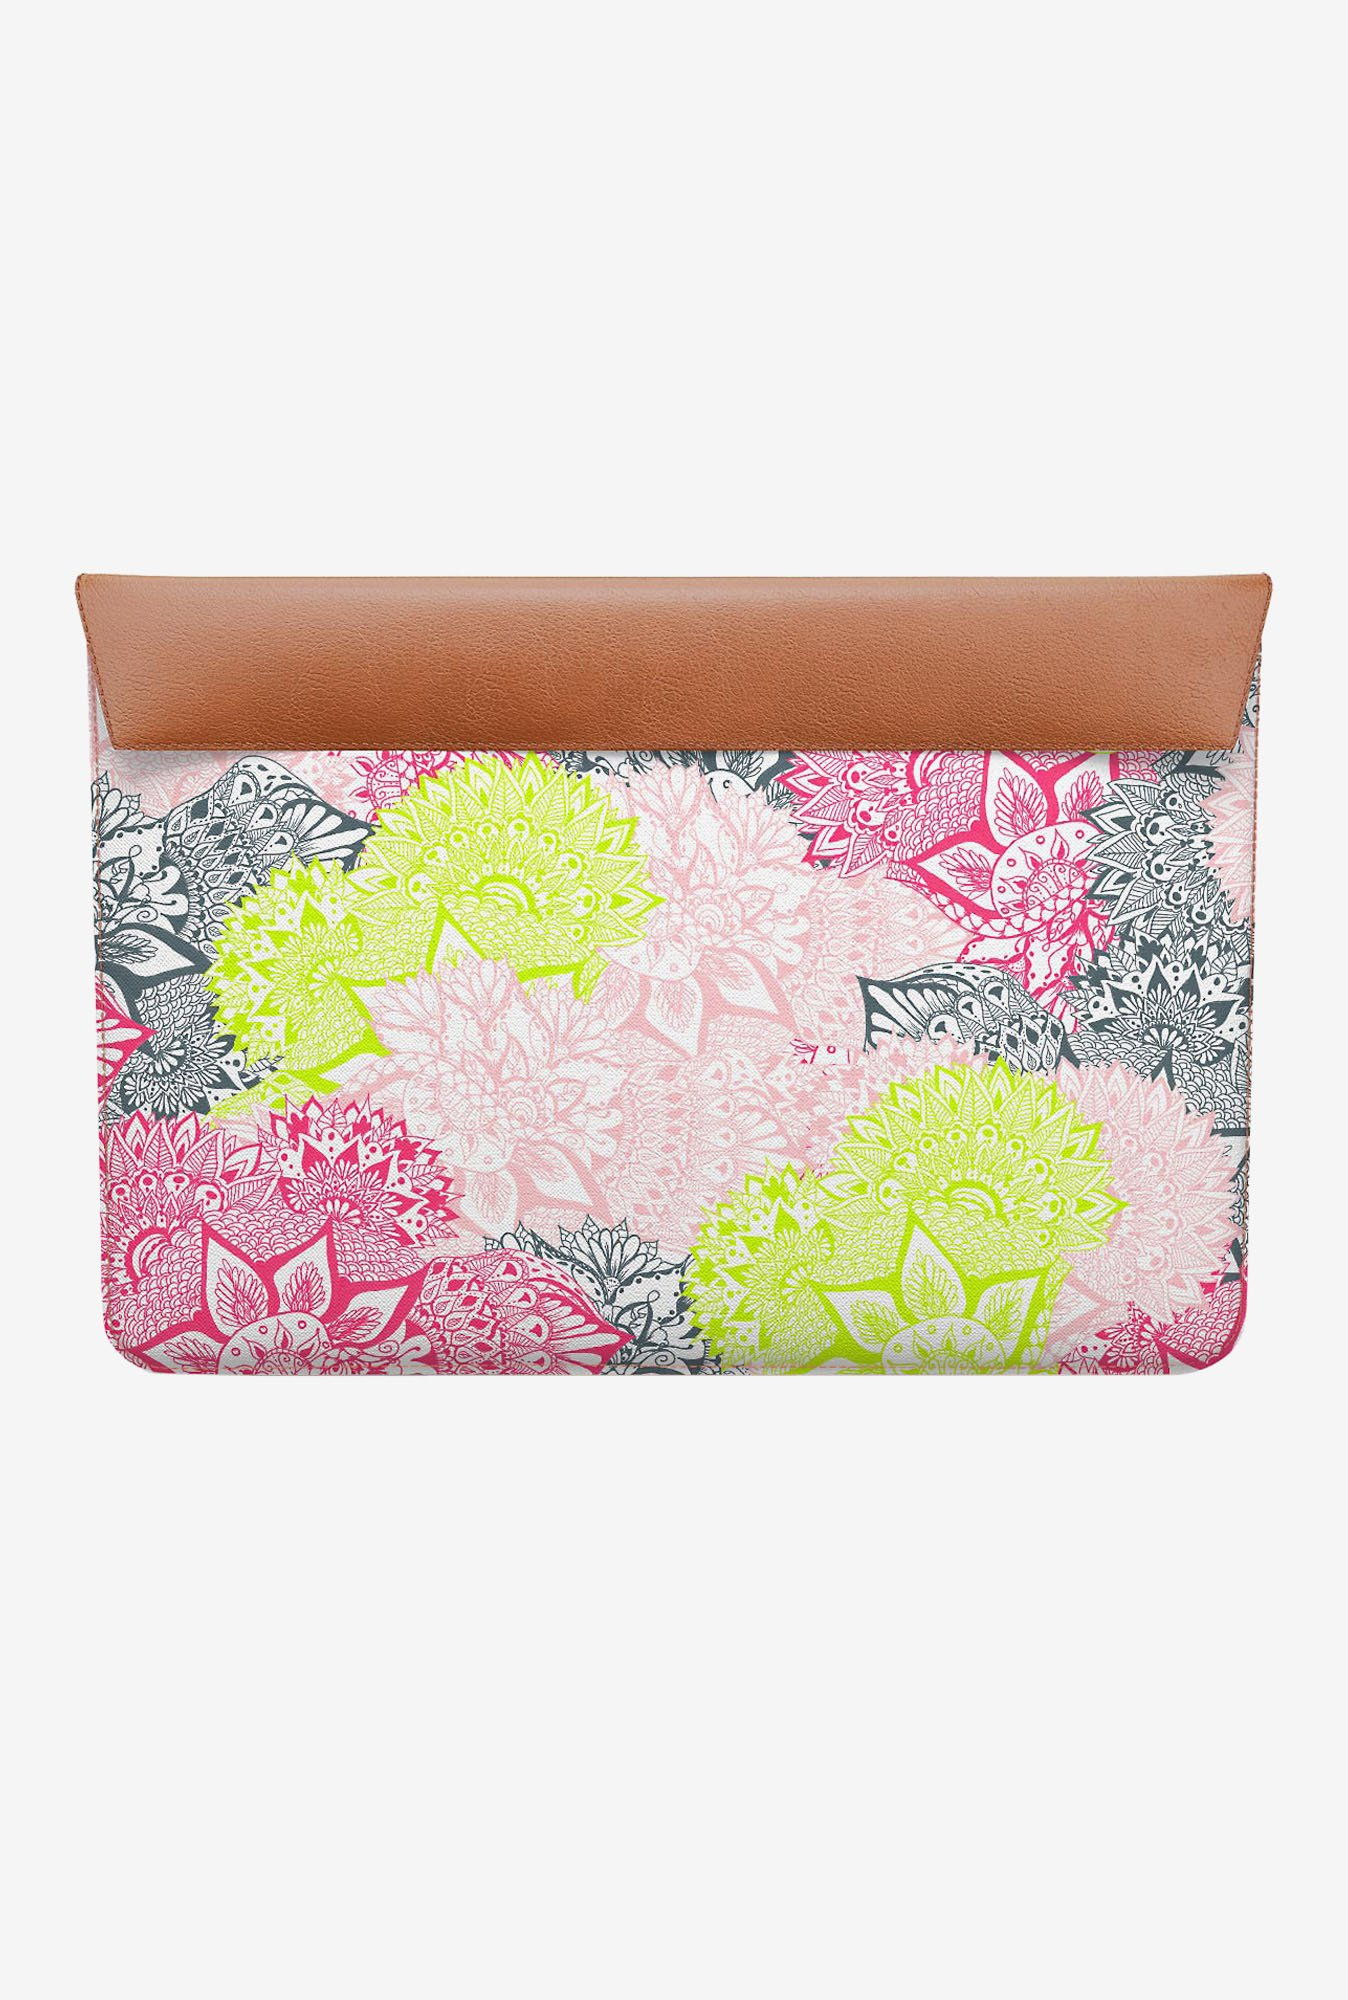 DailyObjects Paisley Pattern MacBook 12 Envelope Sleeve